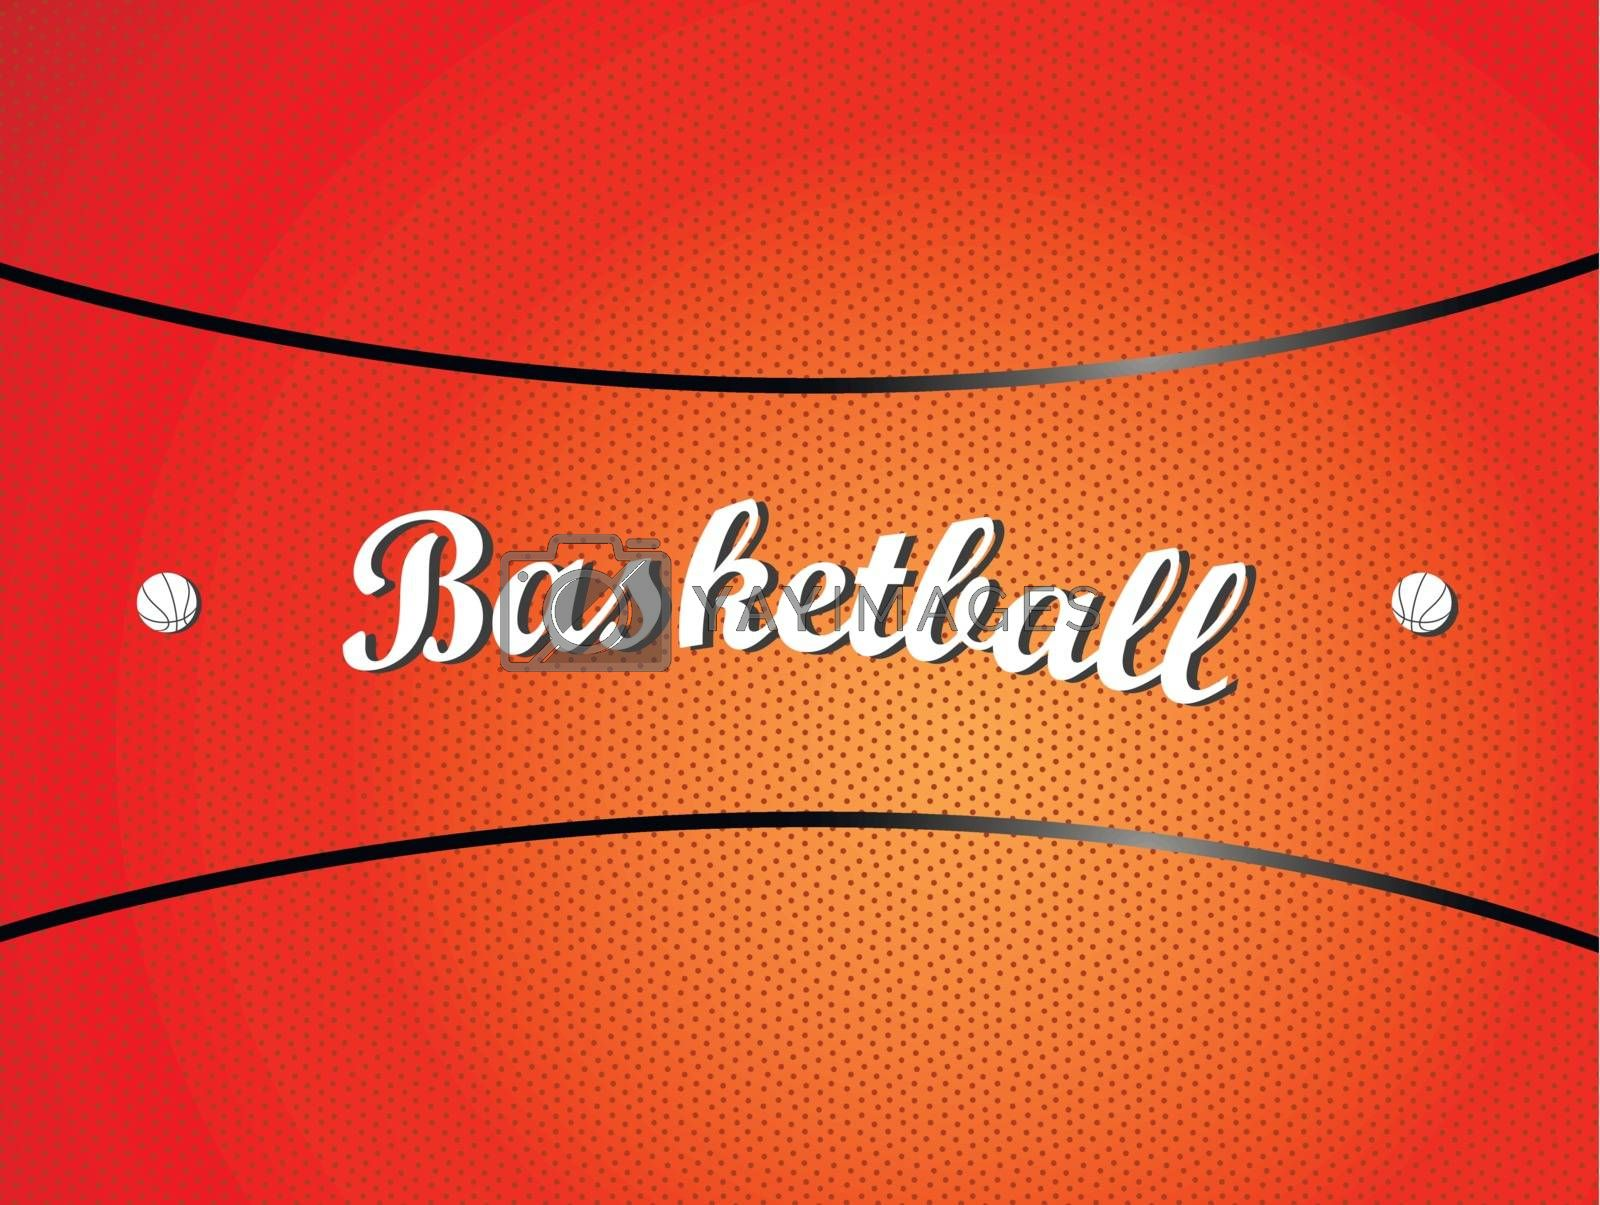 Vector illustration of a basketball texture with text